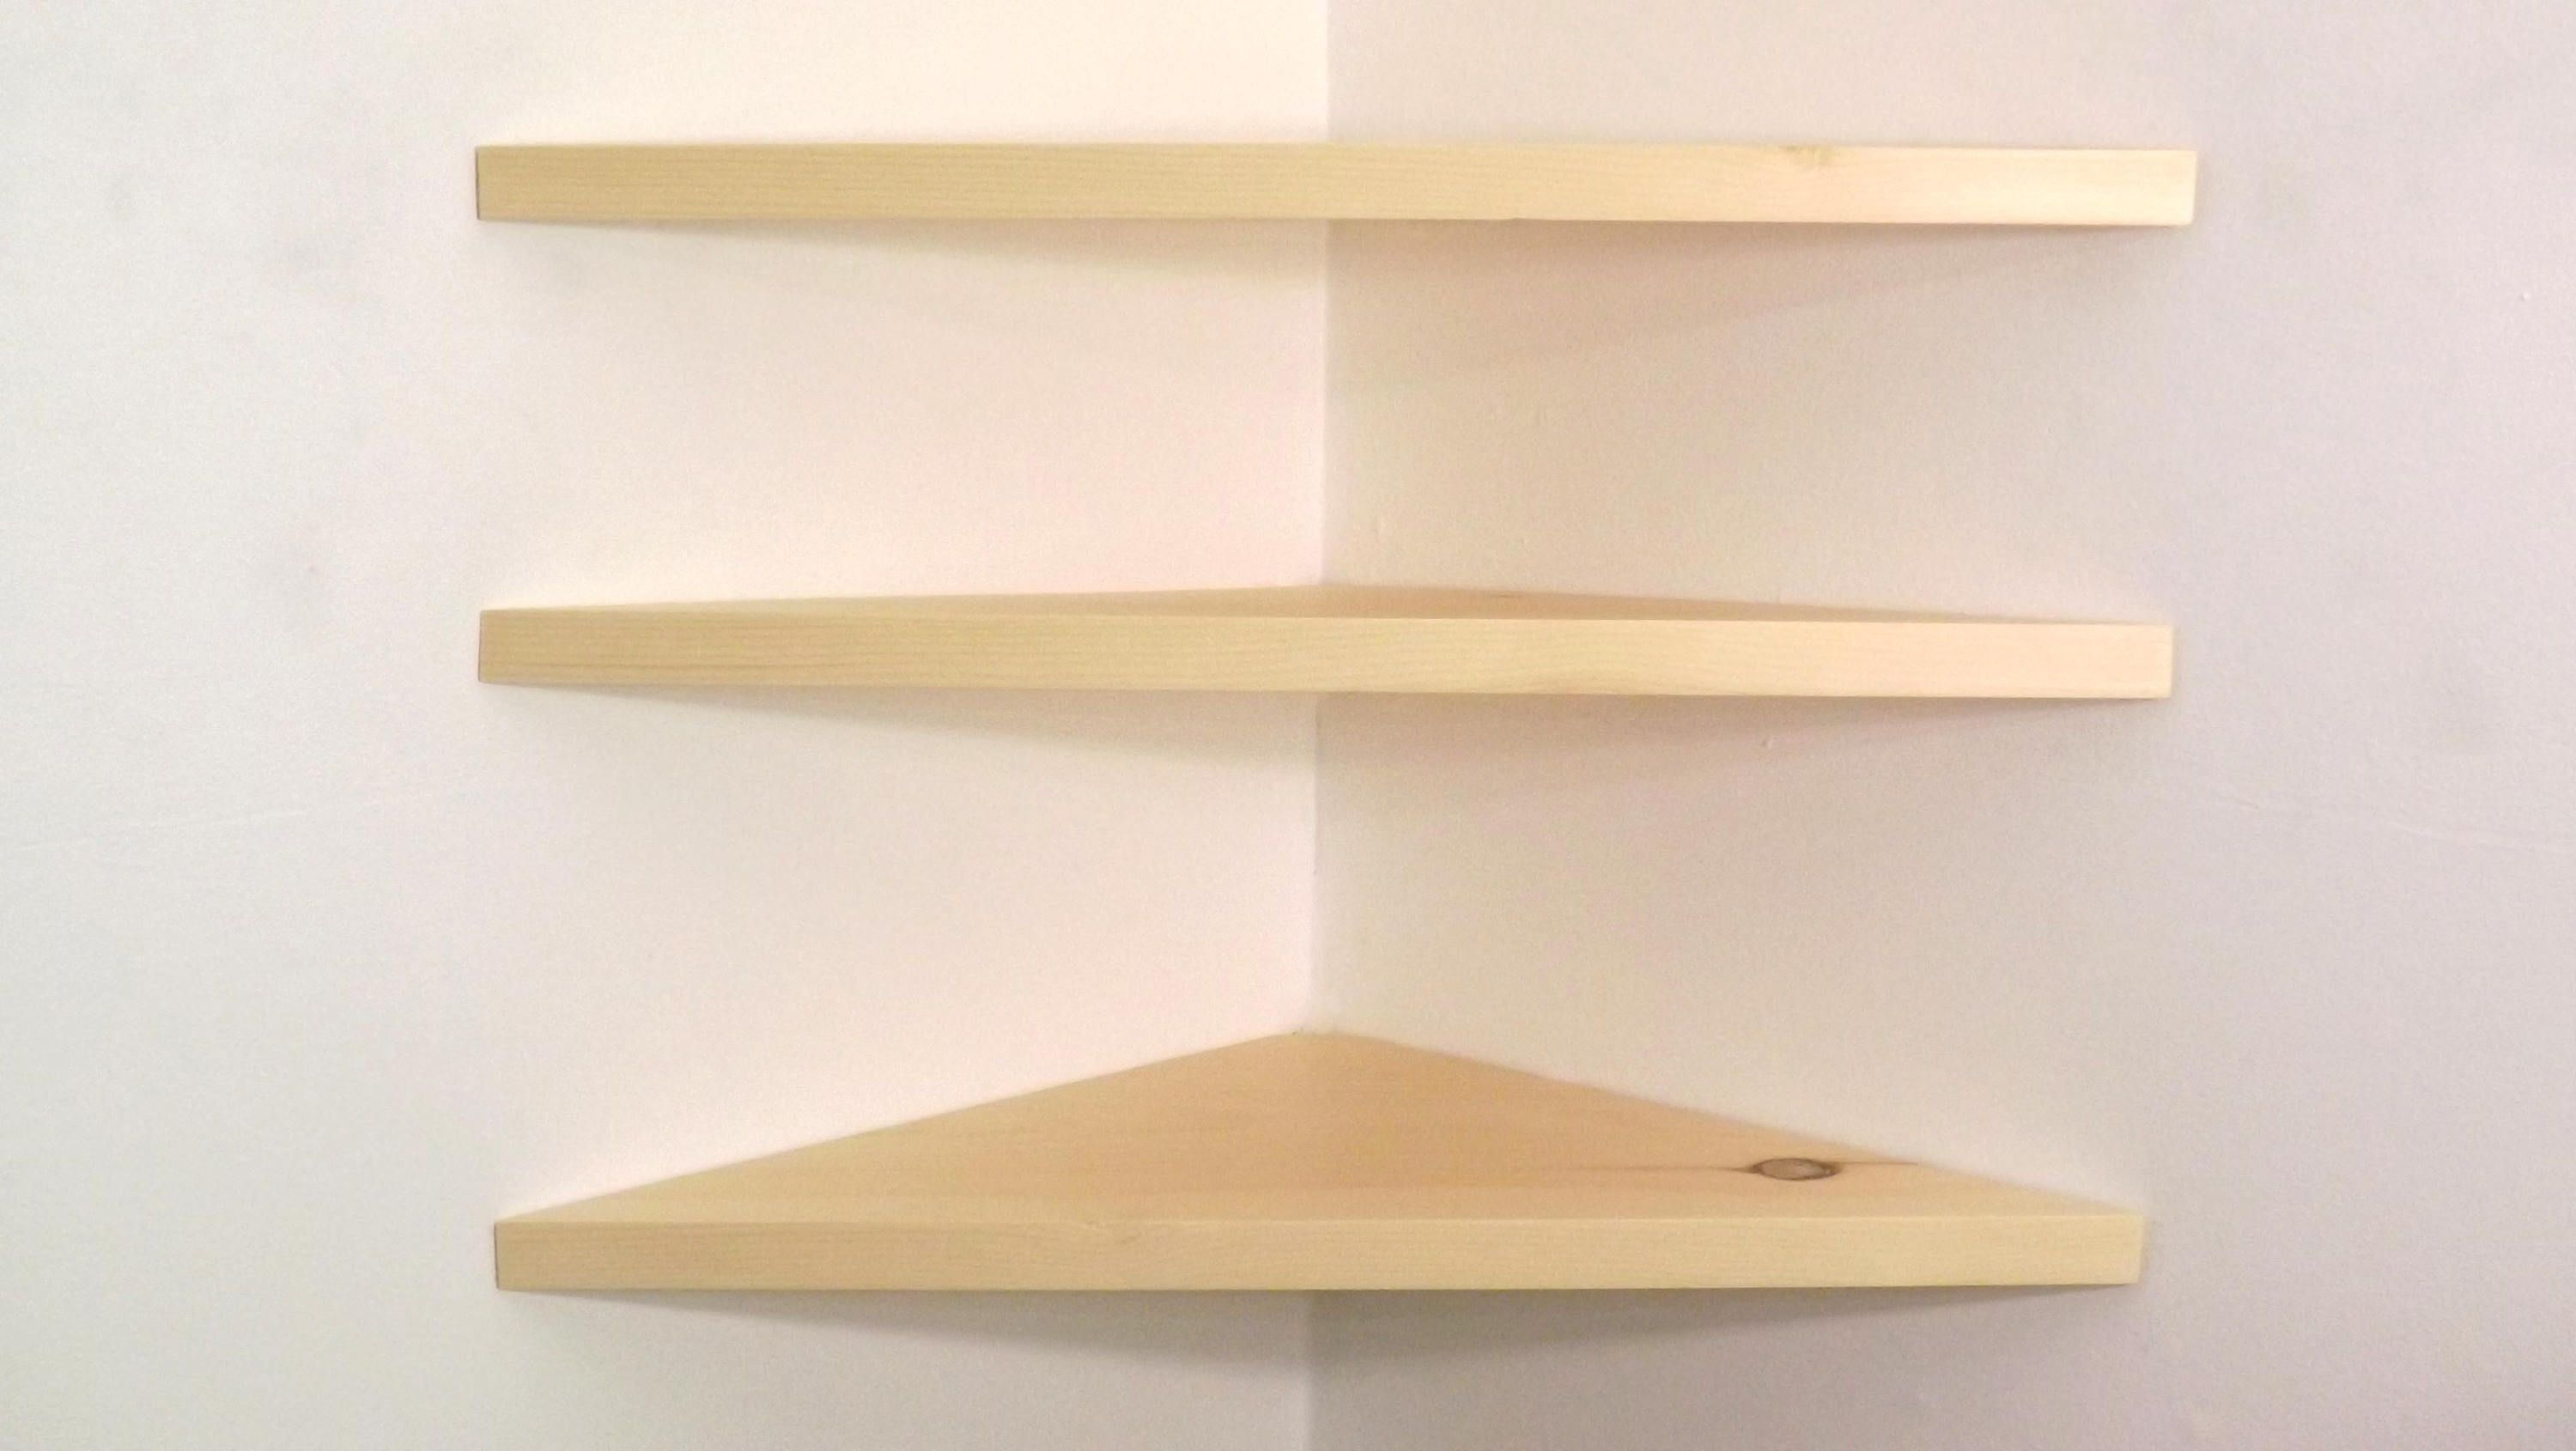 Pin By Bawoodworking On Corner Shelves Floating Corner Shelves Corner Shelves Shelves